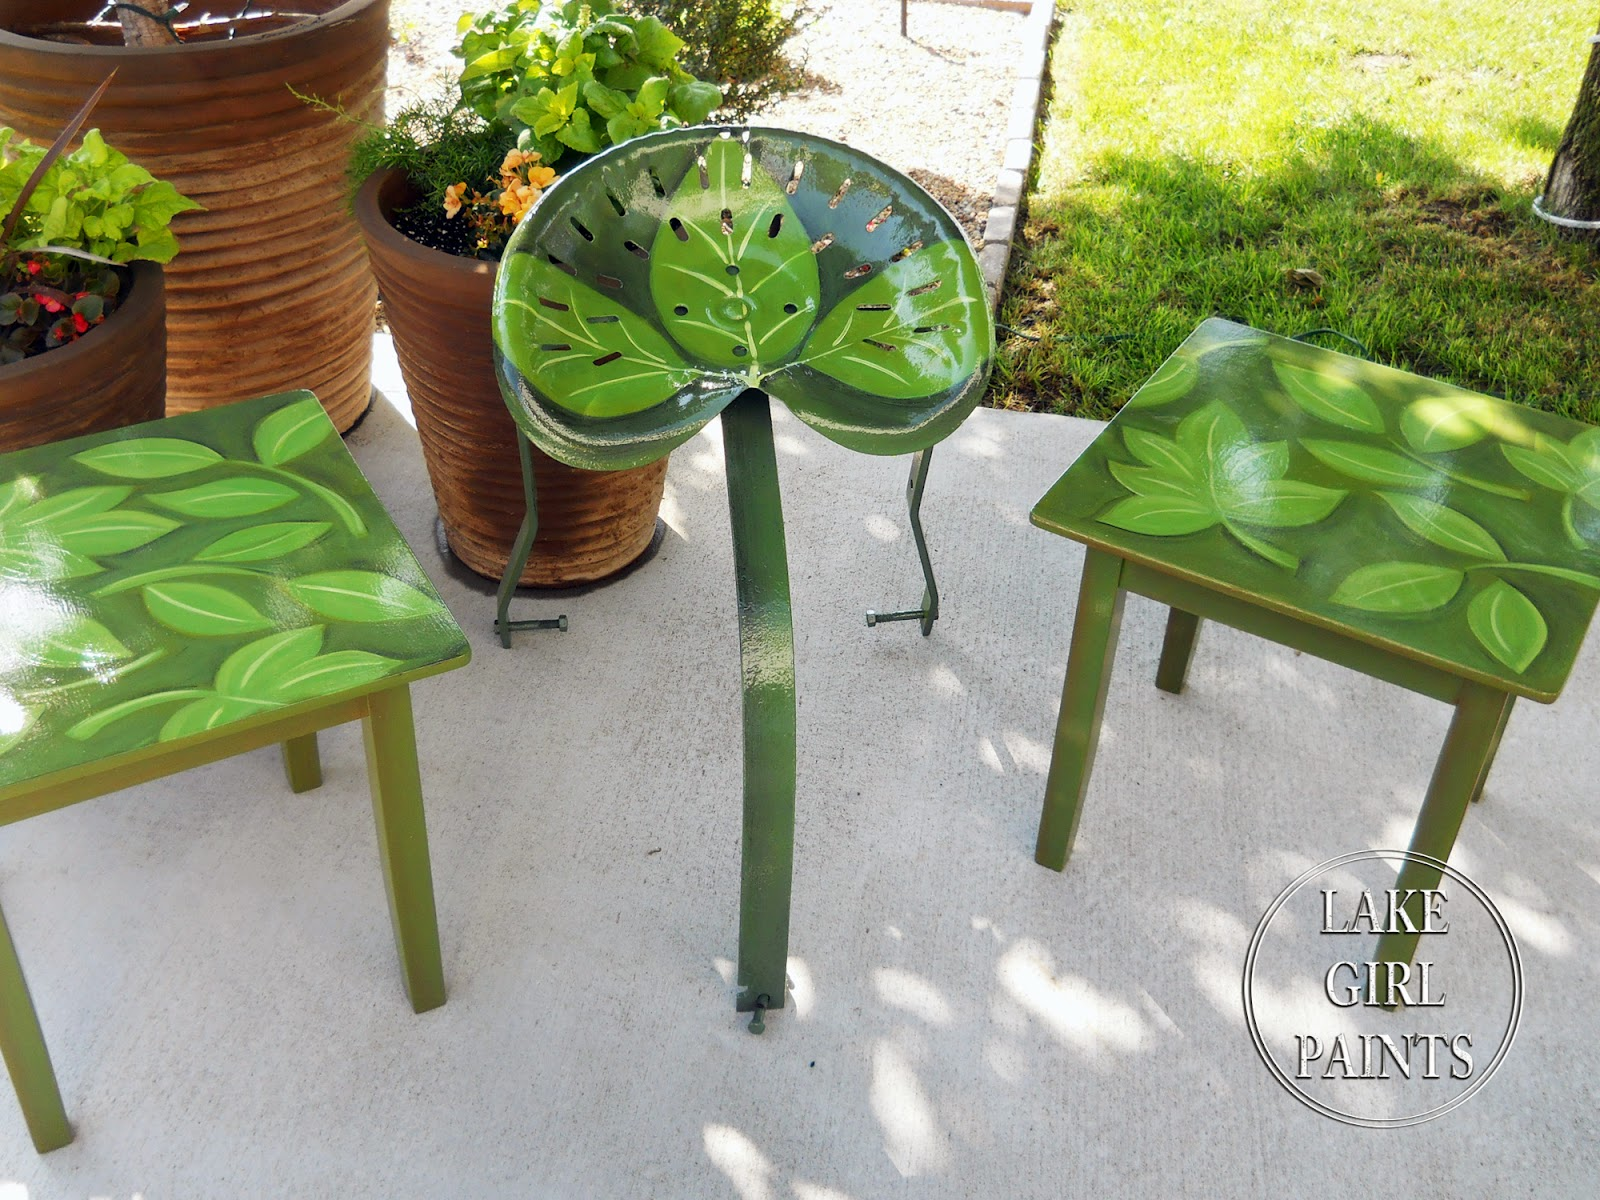 Tractor Seat Outdoor Chairs : Lake girl paints painted palm leaf on outdoor table and